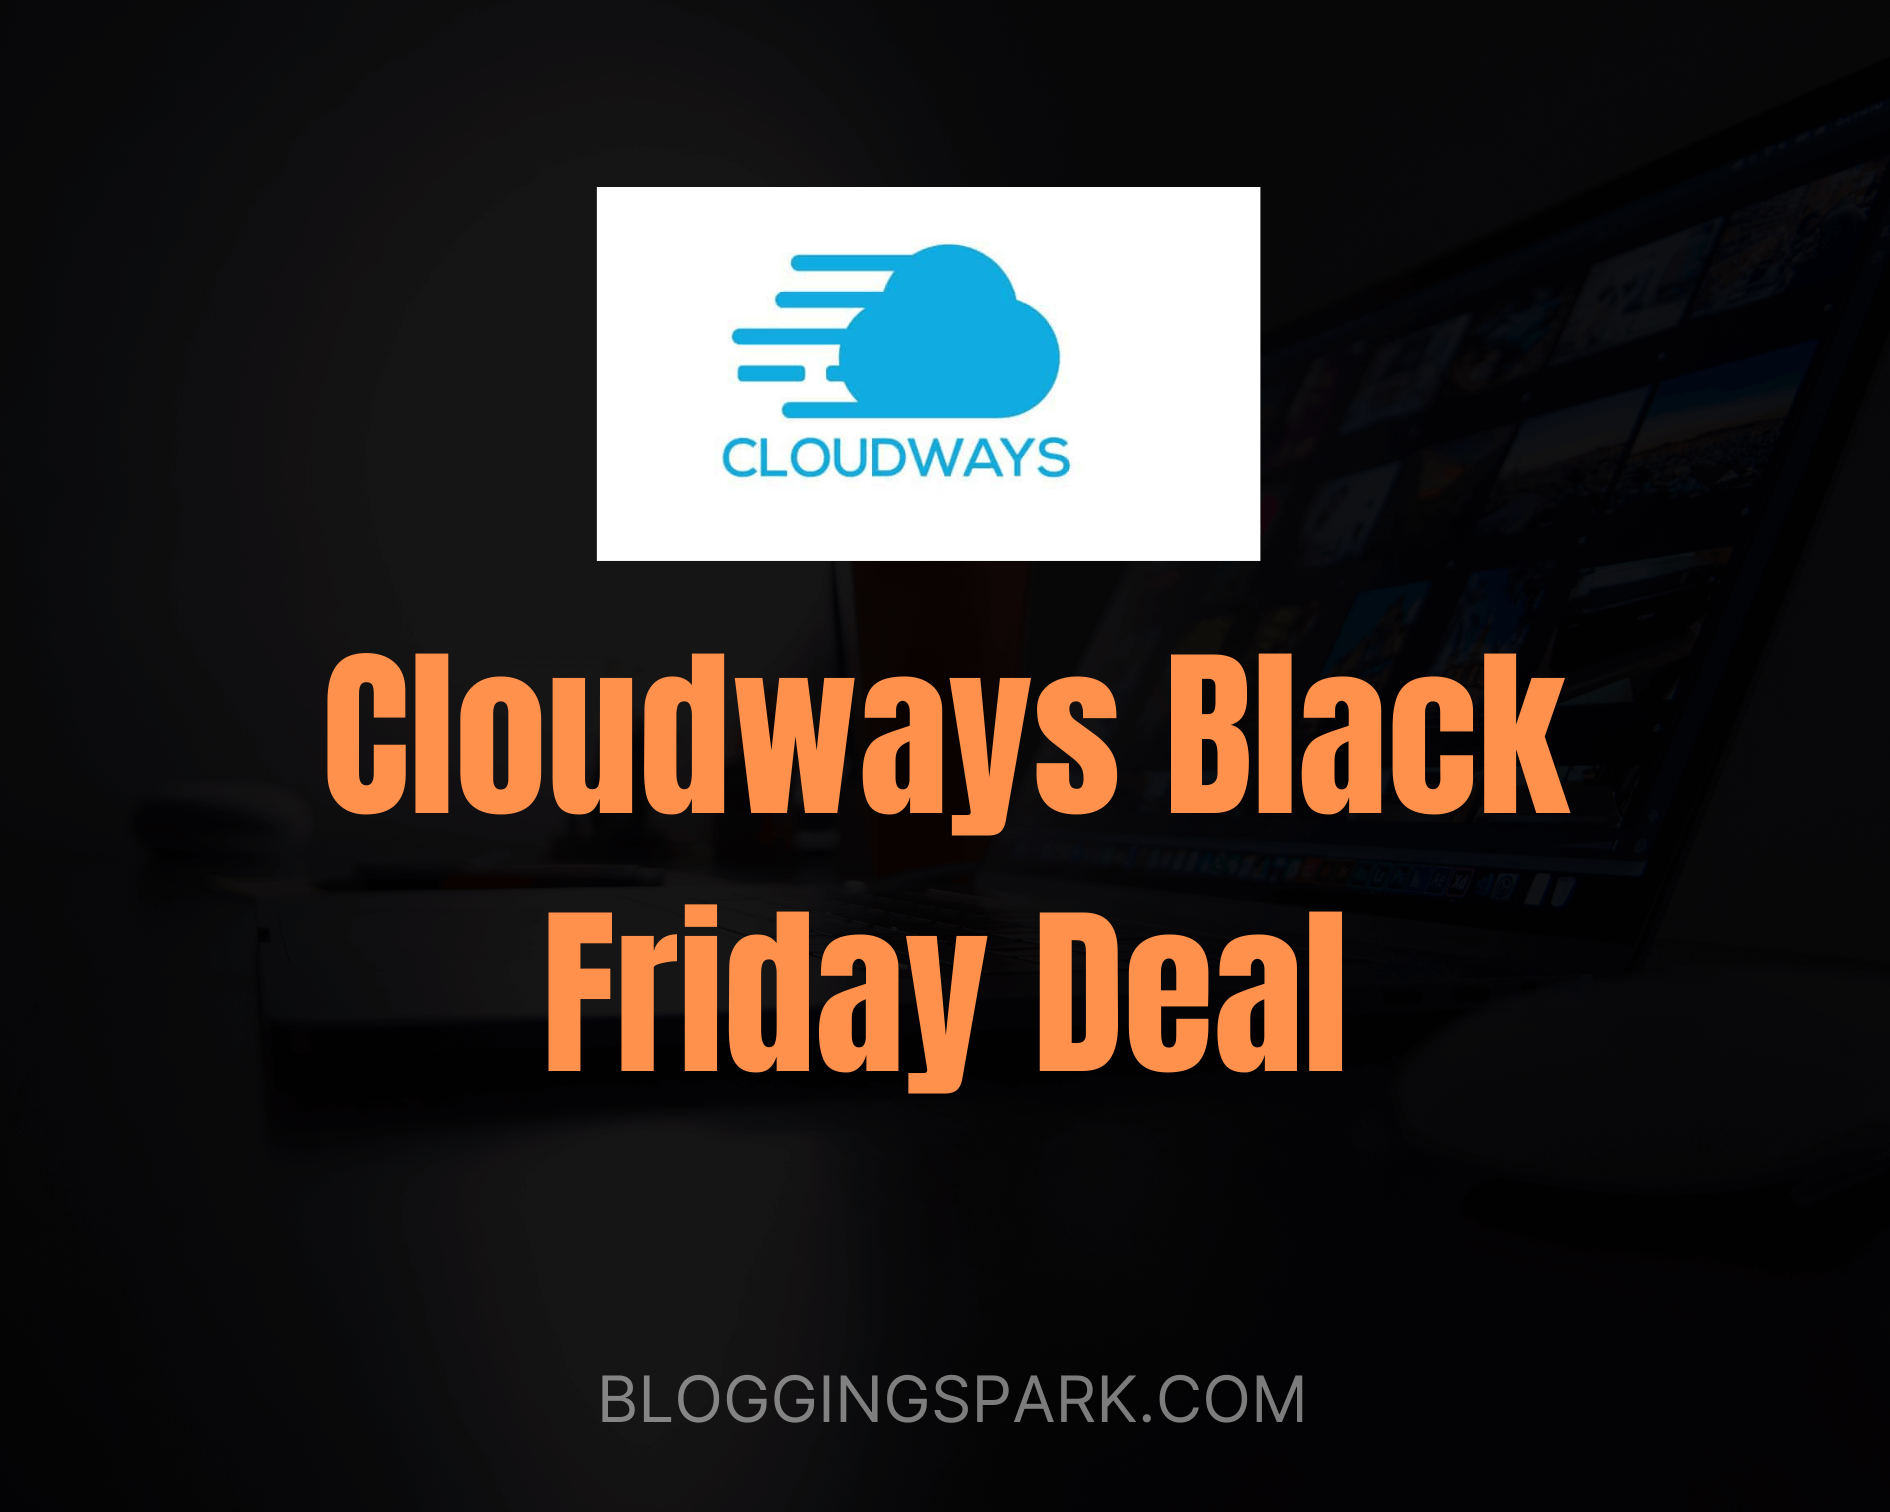 Cloudways Black Friday Deal 2020: Get 40% Discount for 4 Months